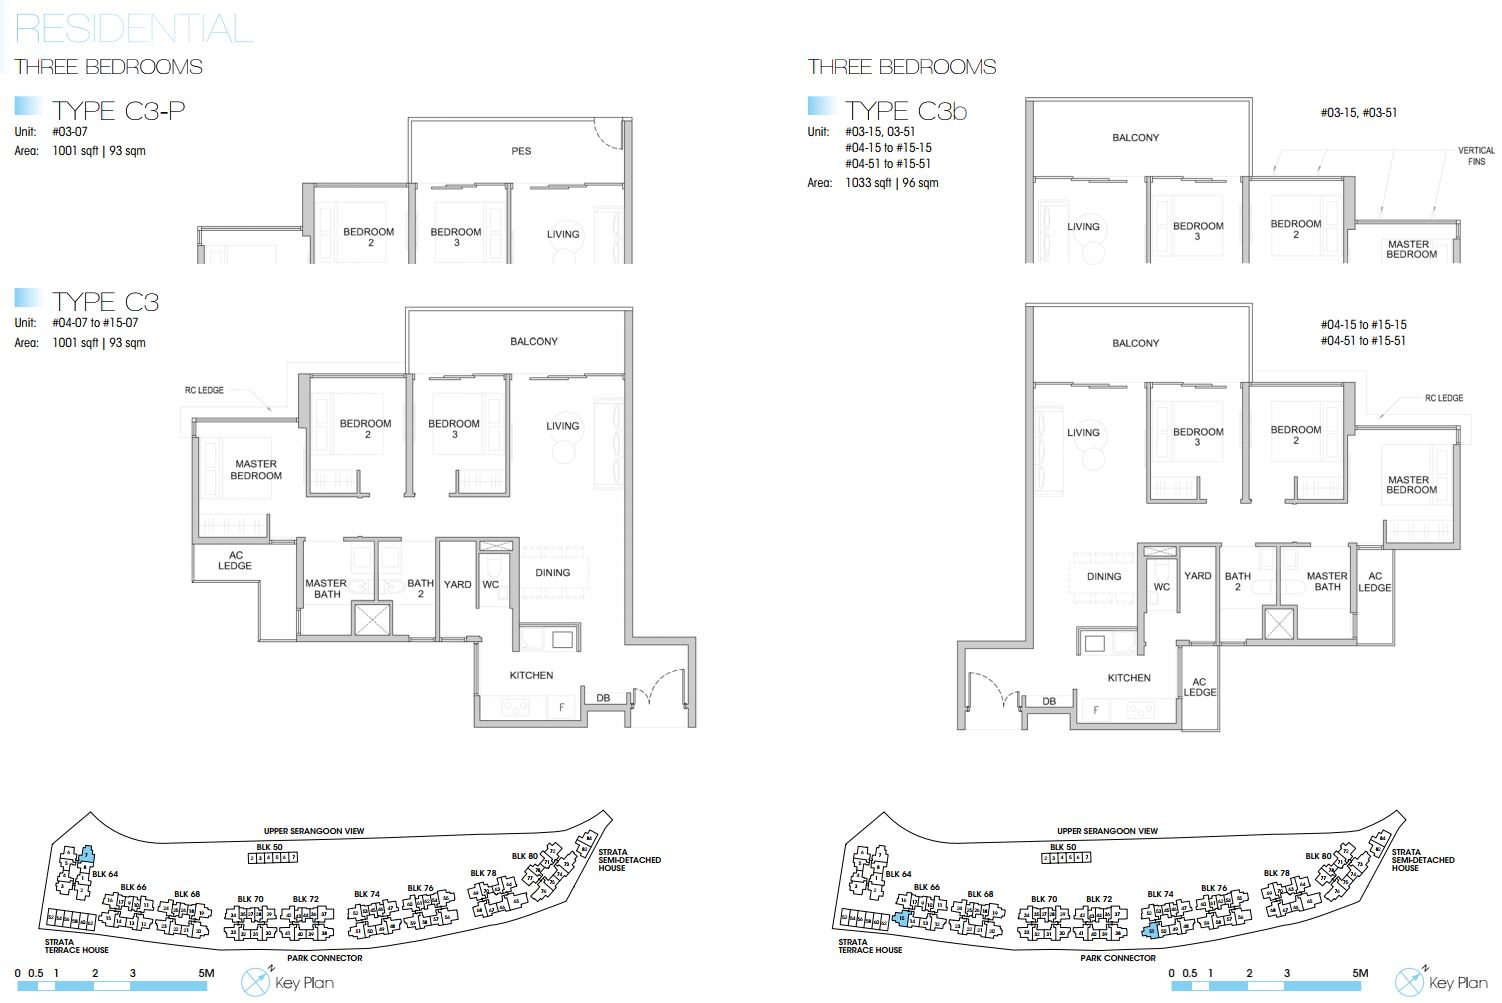 Kingsford Waterbay FloorPlan - 3 Bedroom Type C3